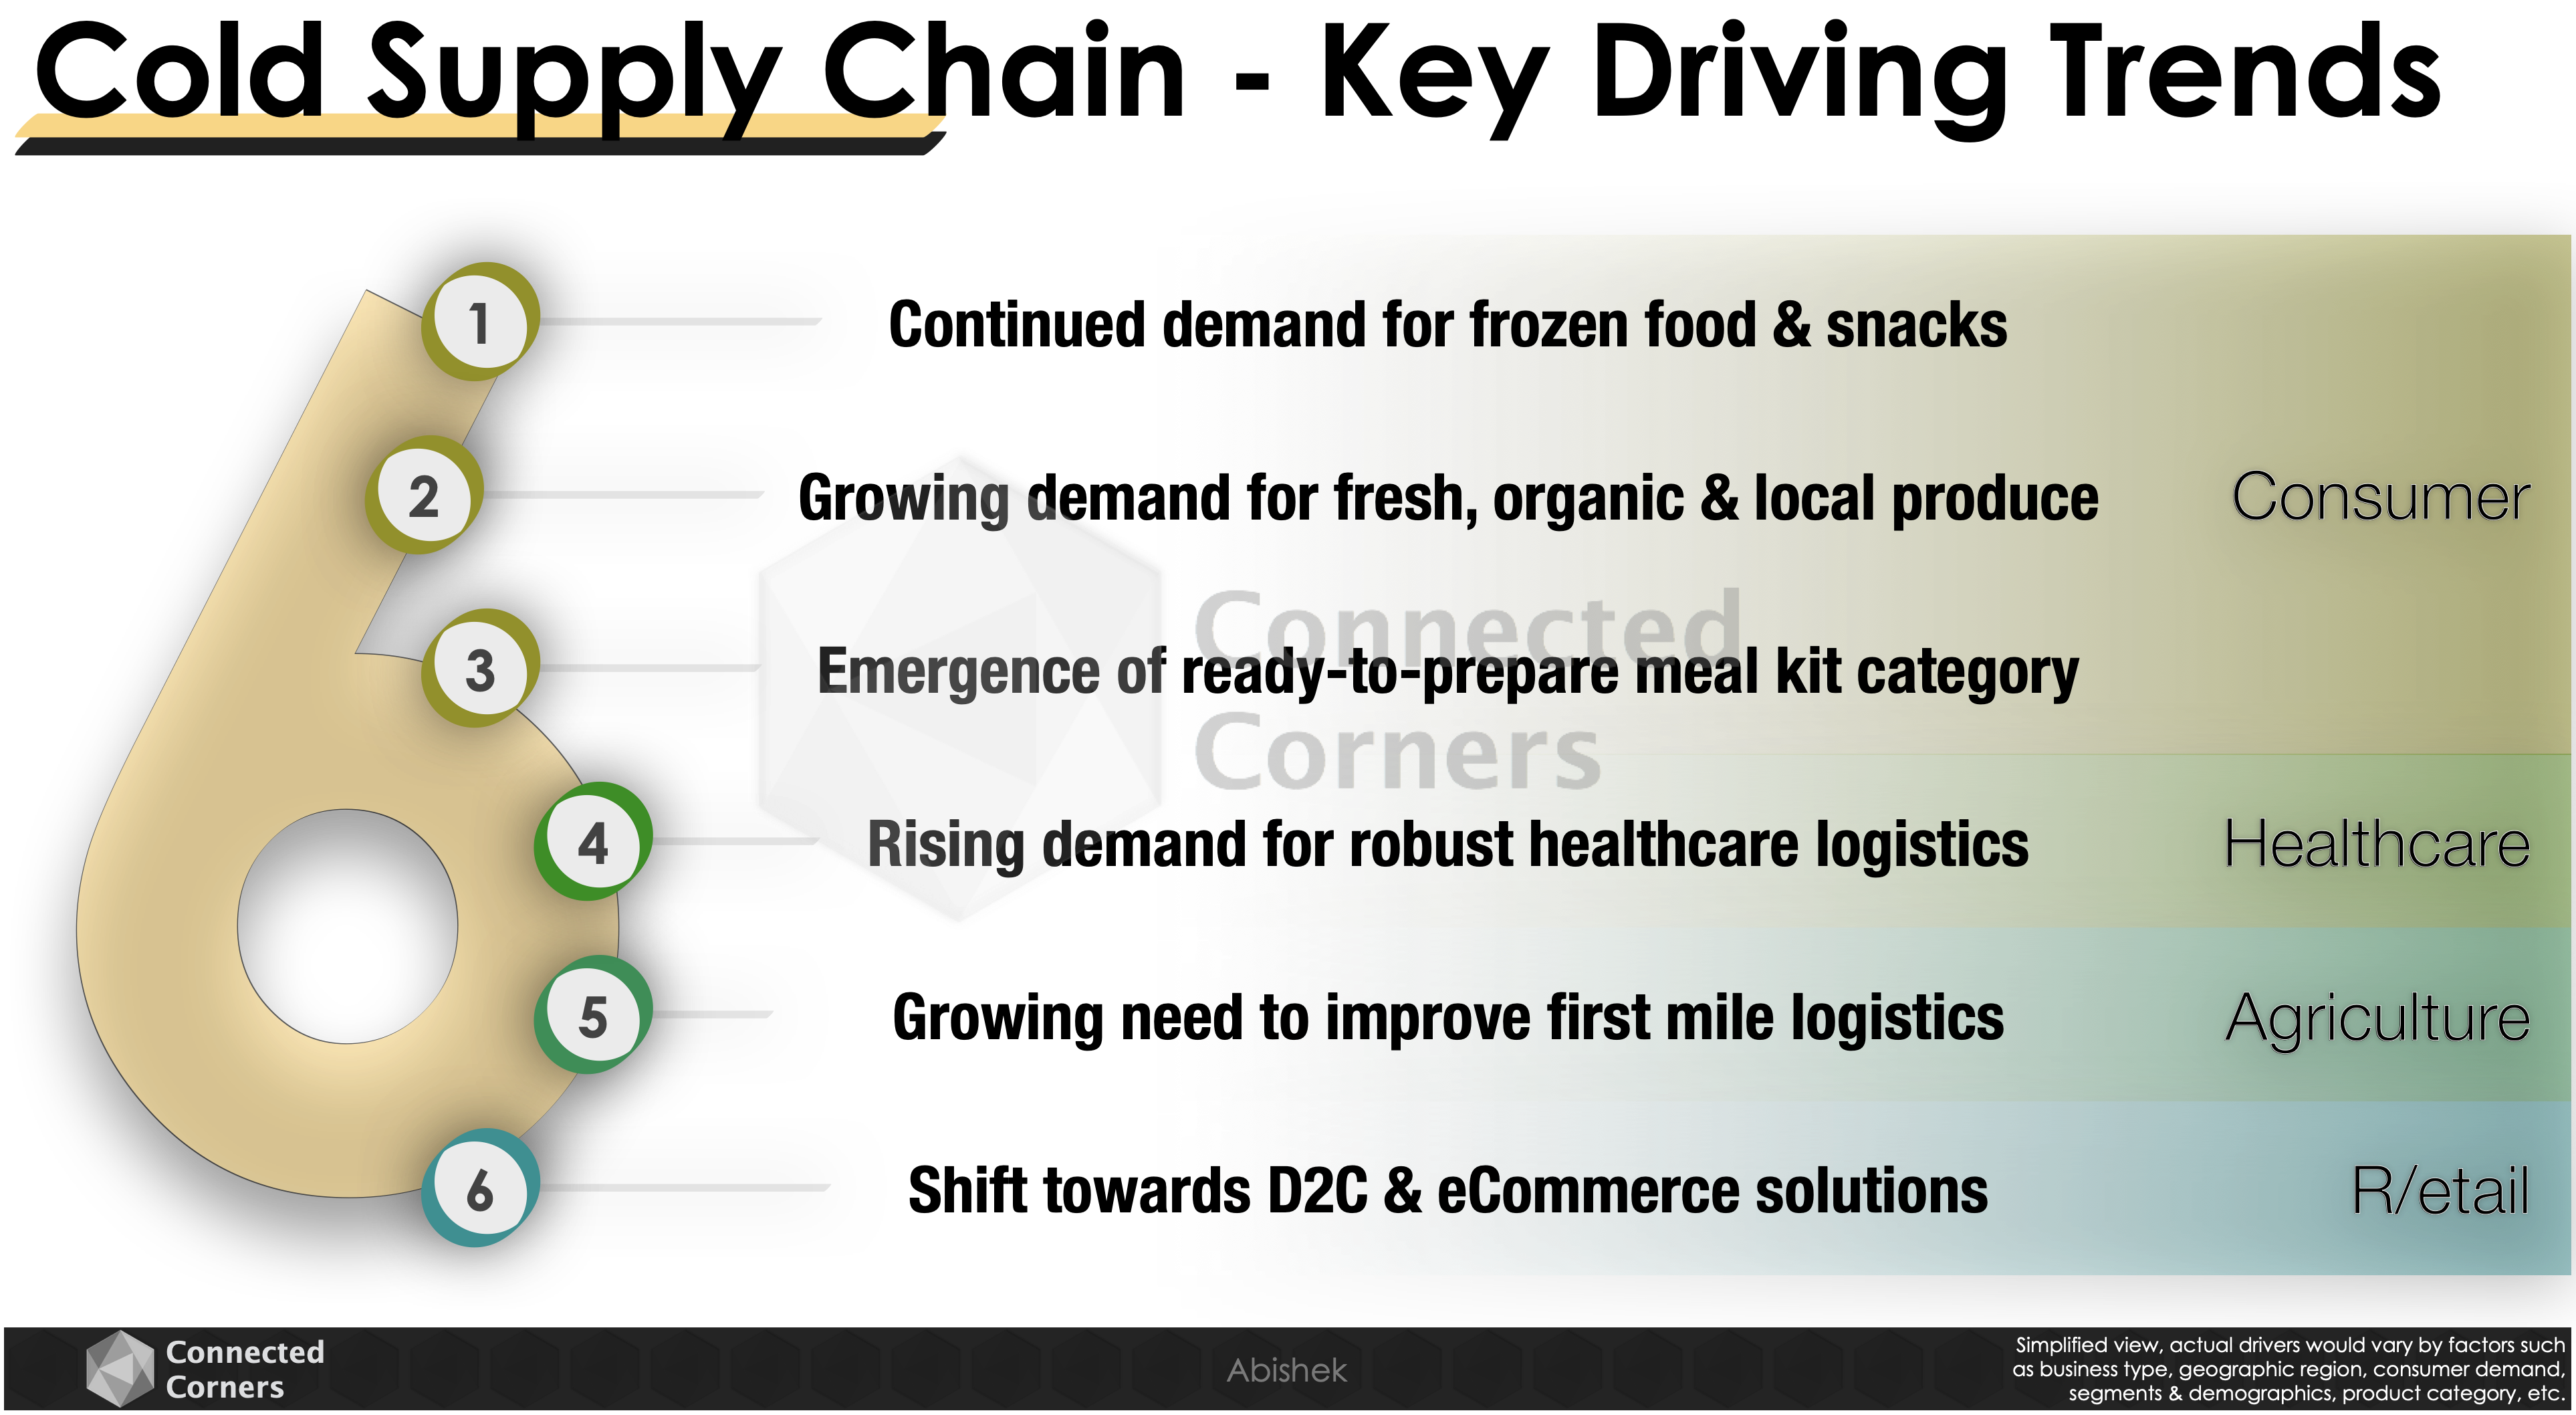 Trends driving cold supply chain - Connected Corners